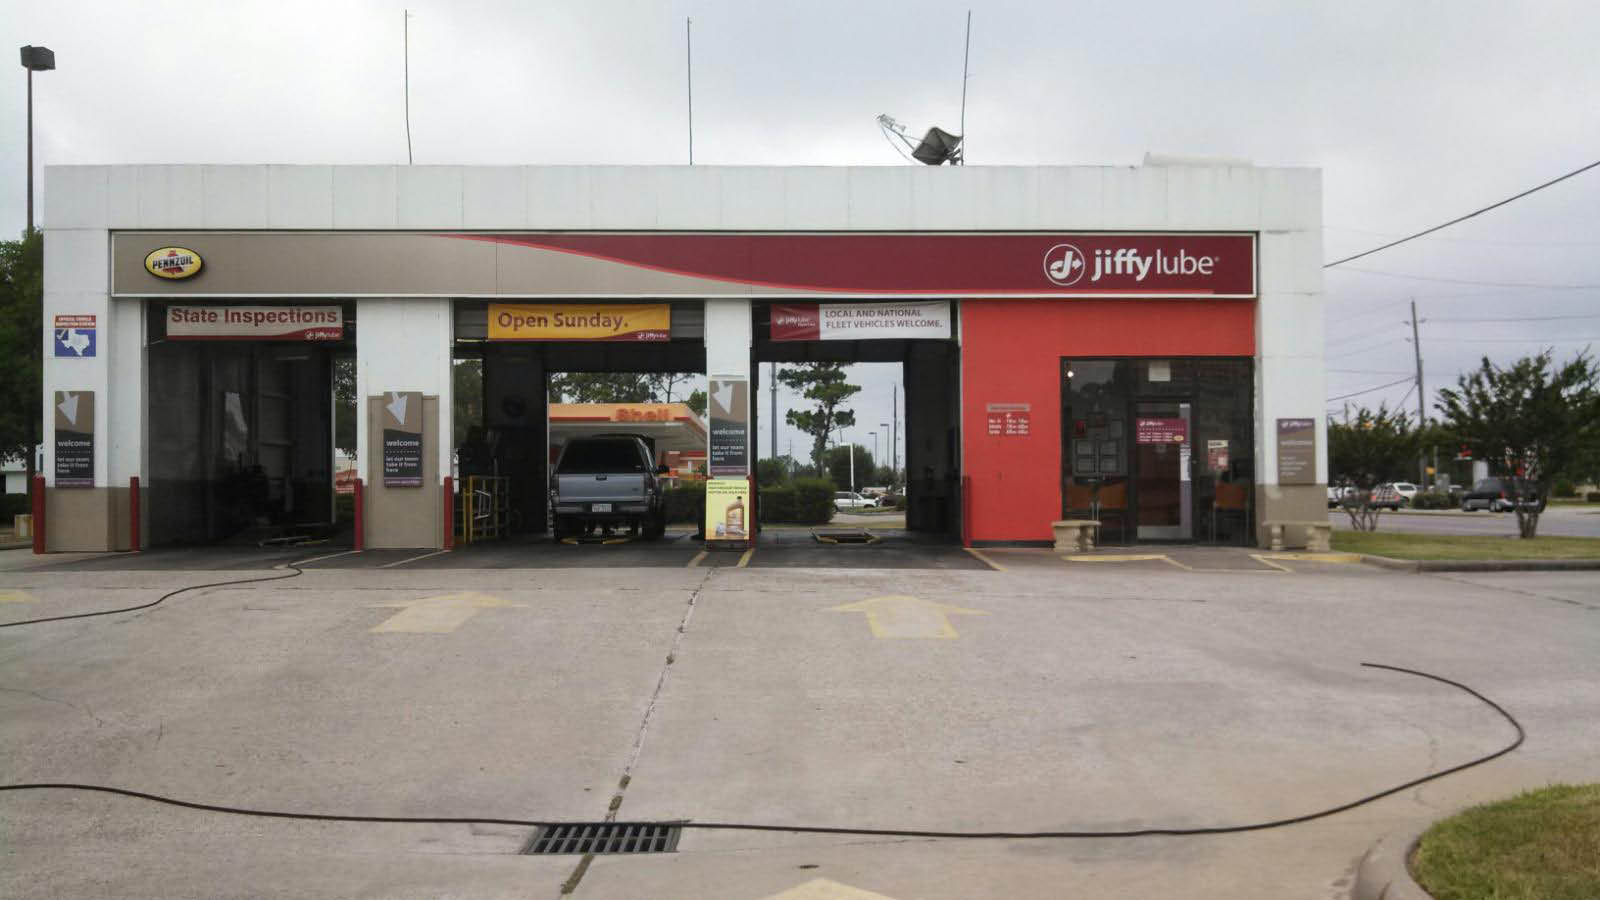 Find our location for a Jiffy Lube Signature Service® Oil Change in Spring, TX